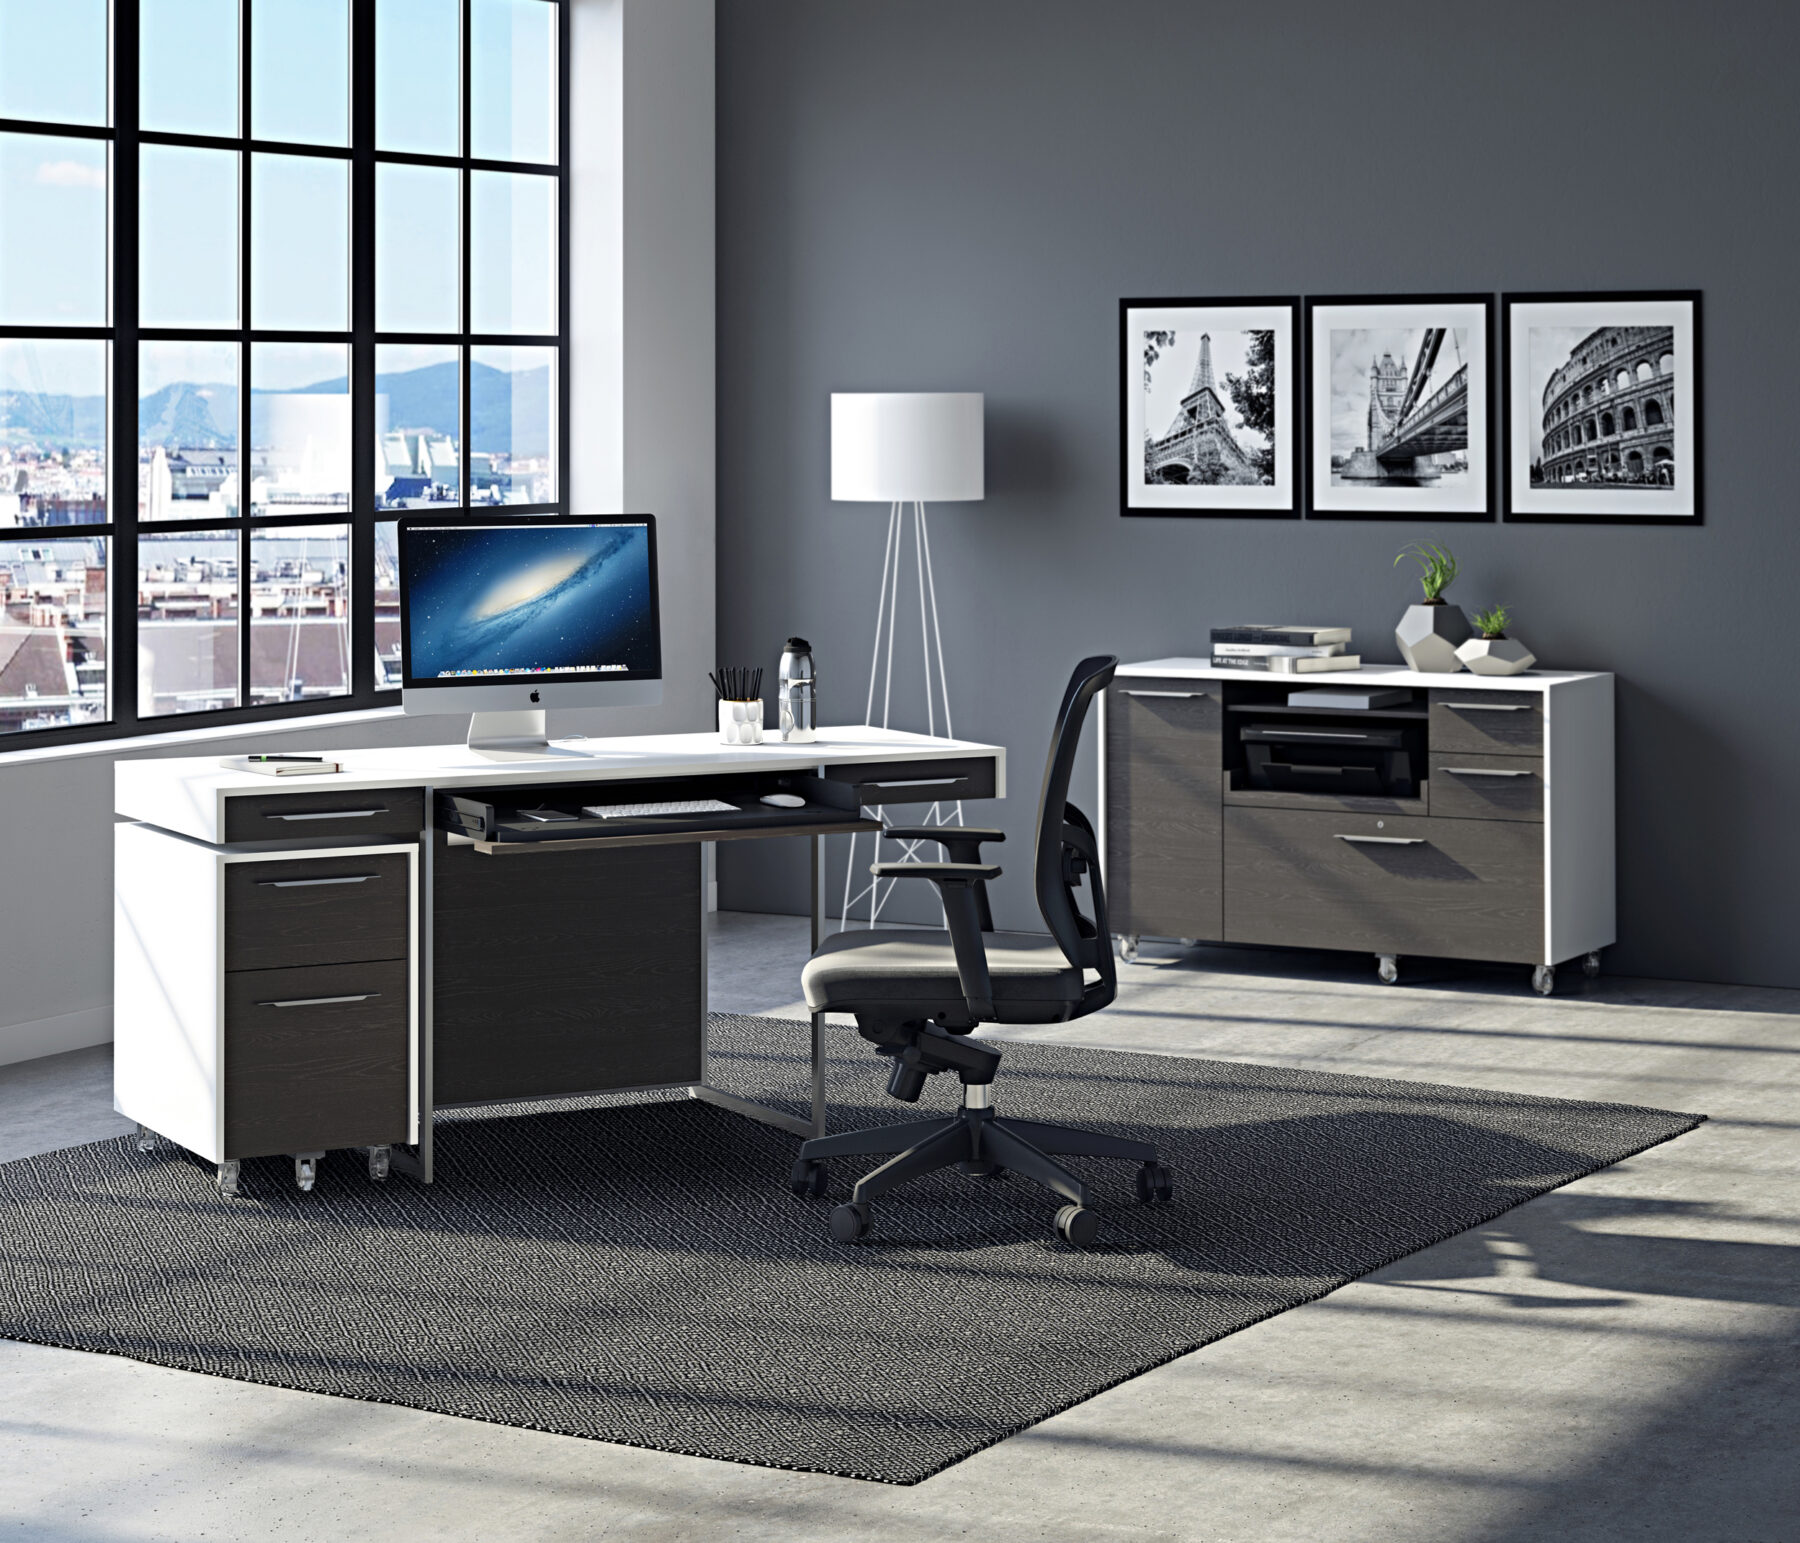 format-collection-bdi-charcoal-modern-office-furniture-lifestyle-3